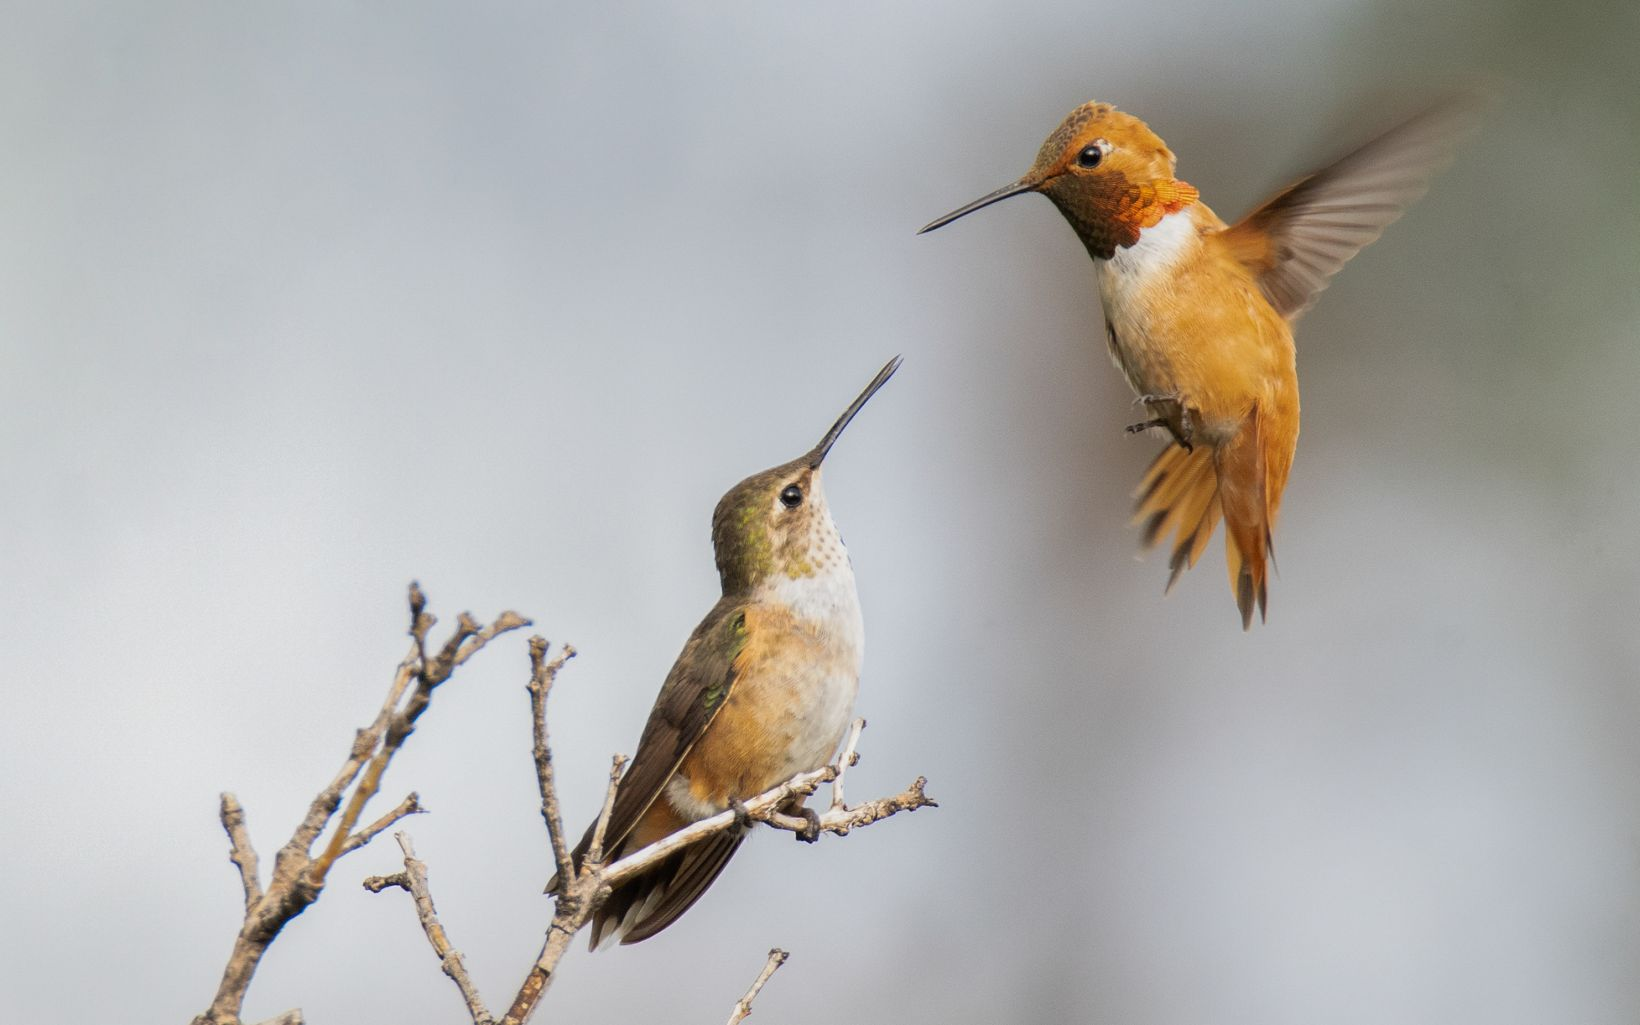 Two reddish brown hummingbirds, one perched on a small branch and one hovering nearby, with their beaks pointed at each other.